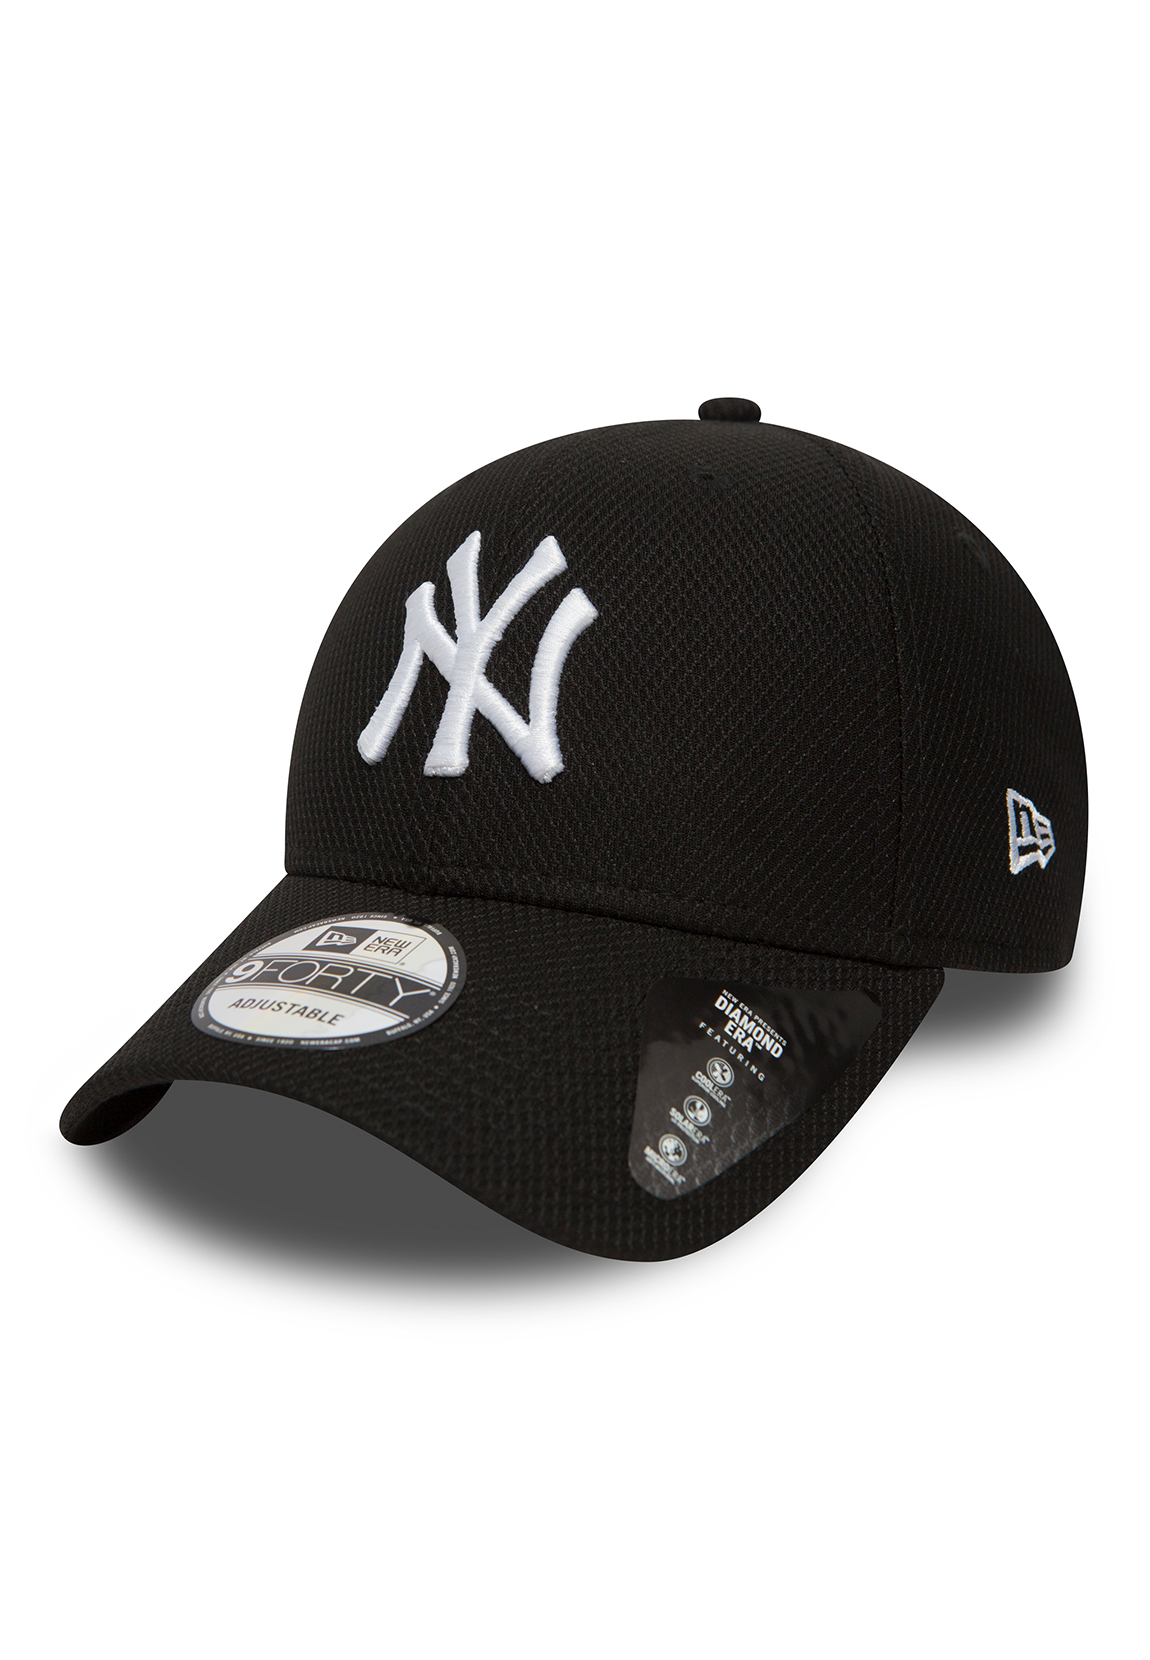 Details about New Era Diamond Era 9Forty Adjustable Cap Ny Yankees Black 992f593c45dc